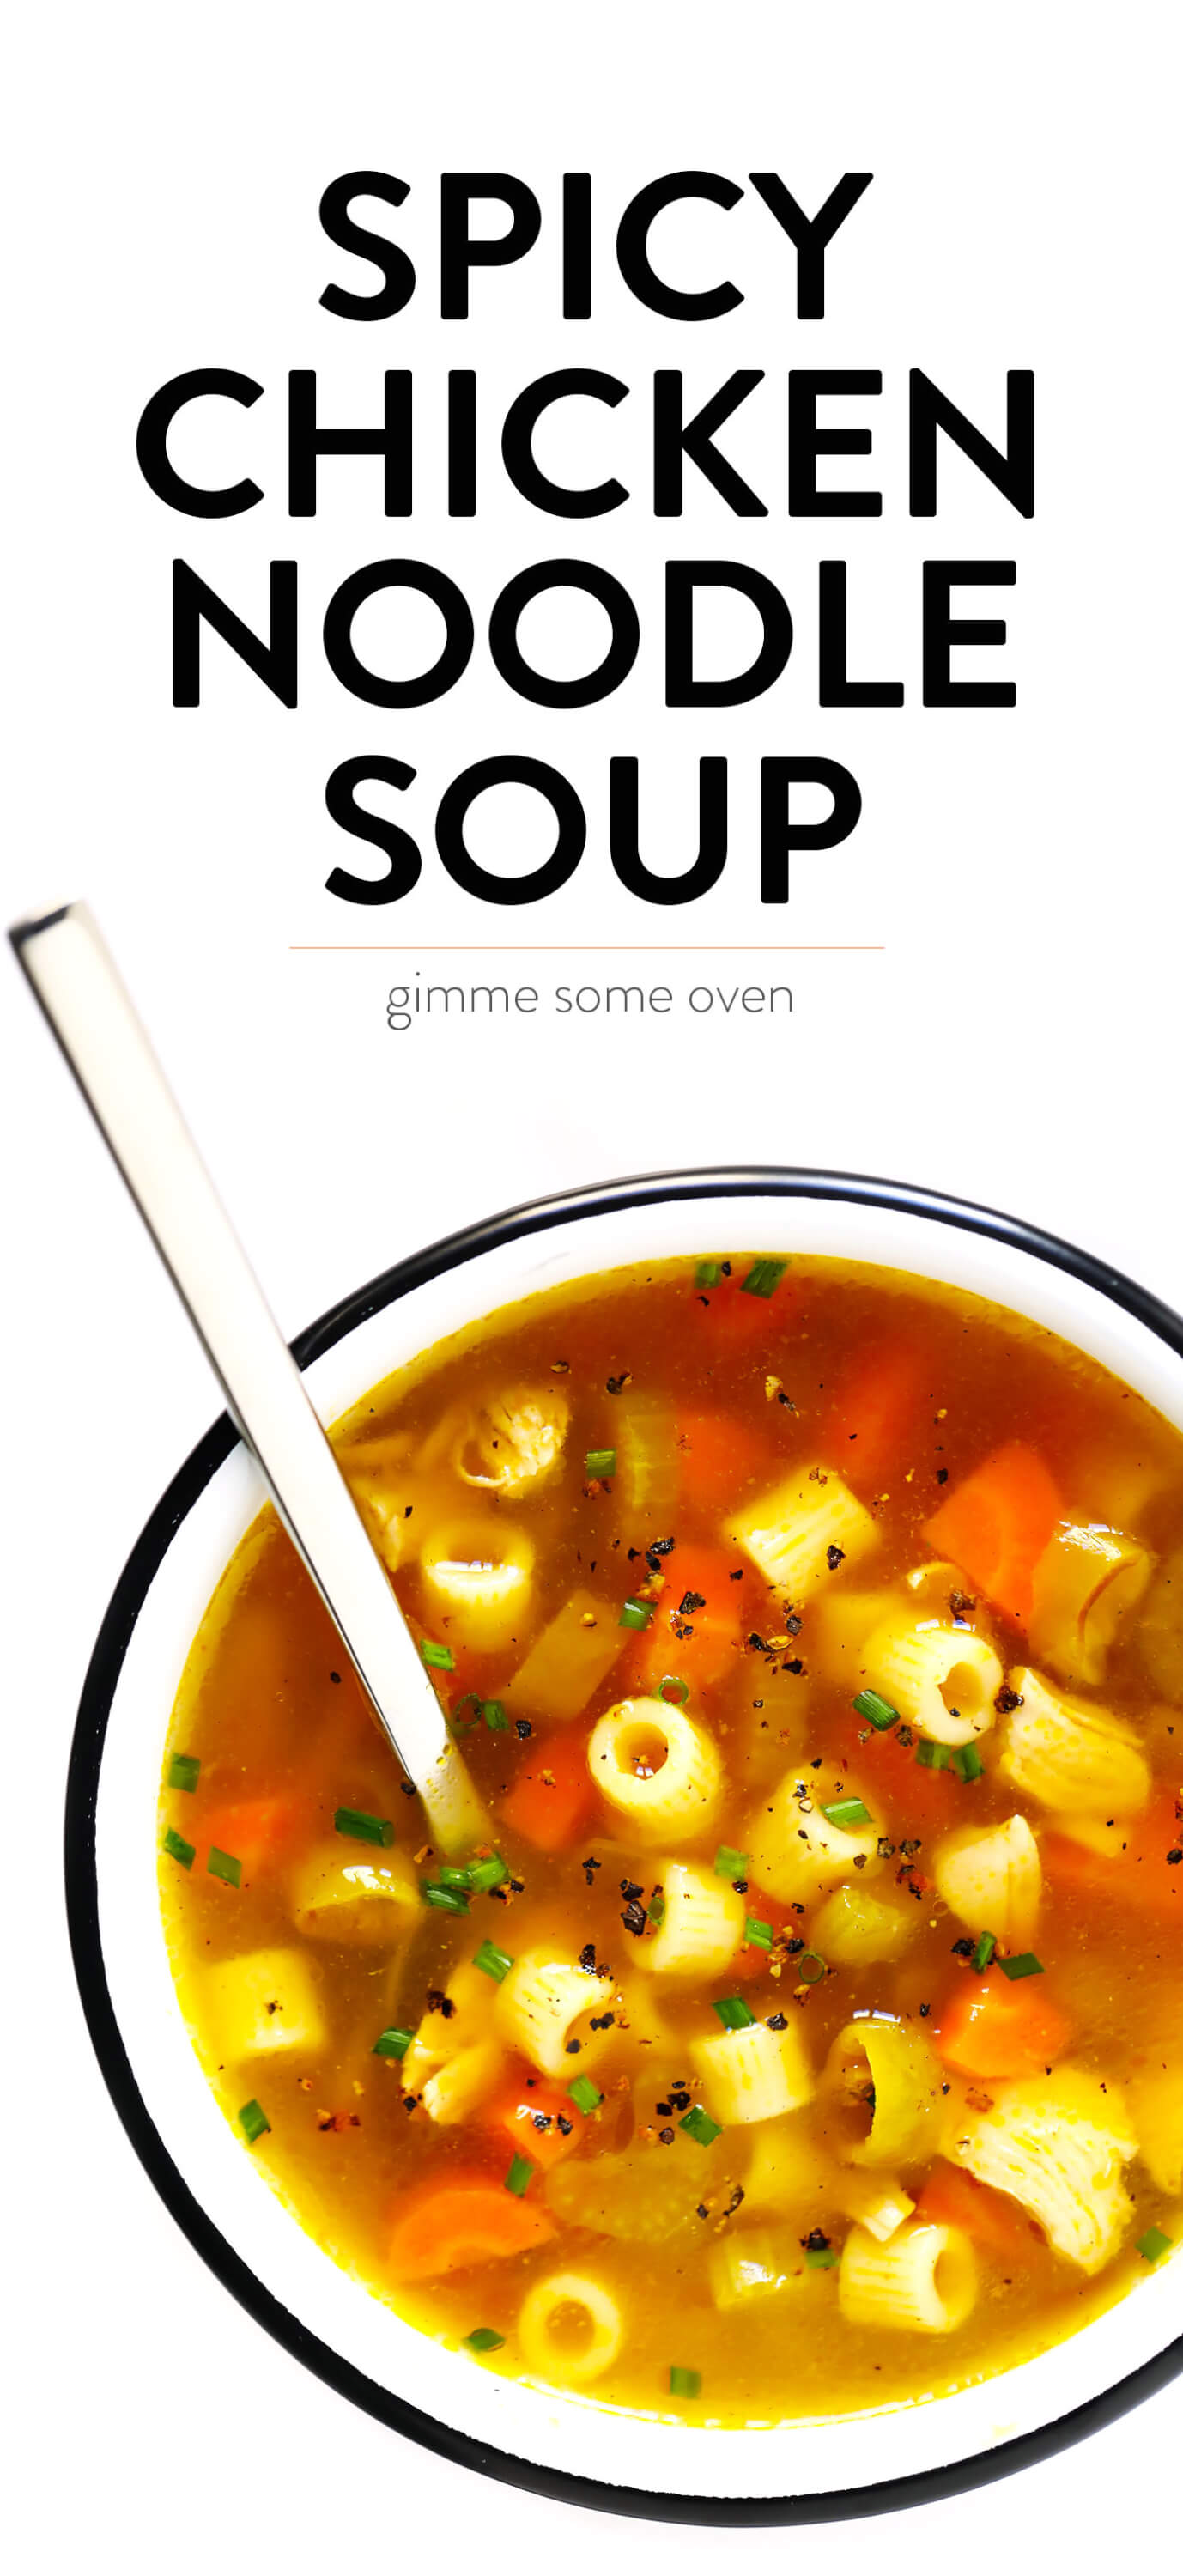 Spicy Pepperoncini Chicken Noodle Soup Recipe